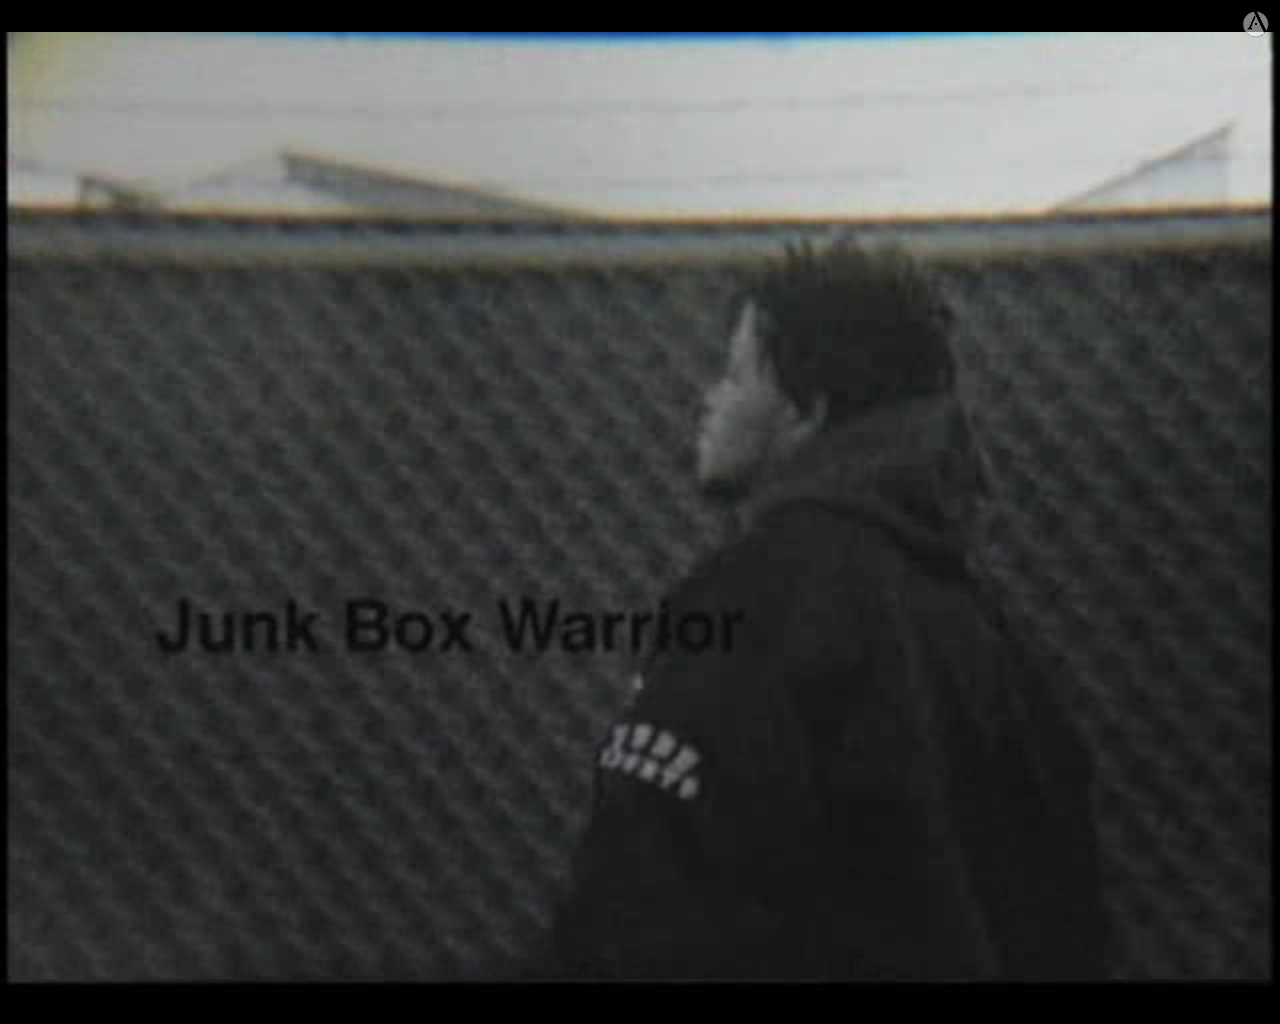 Black and white image of Marcus Rene Van, narrator of Junk Box Warrior, standing in front of a fence. The words Junk Box Warrior are written left and below center of the image.